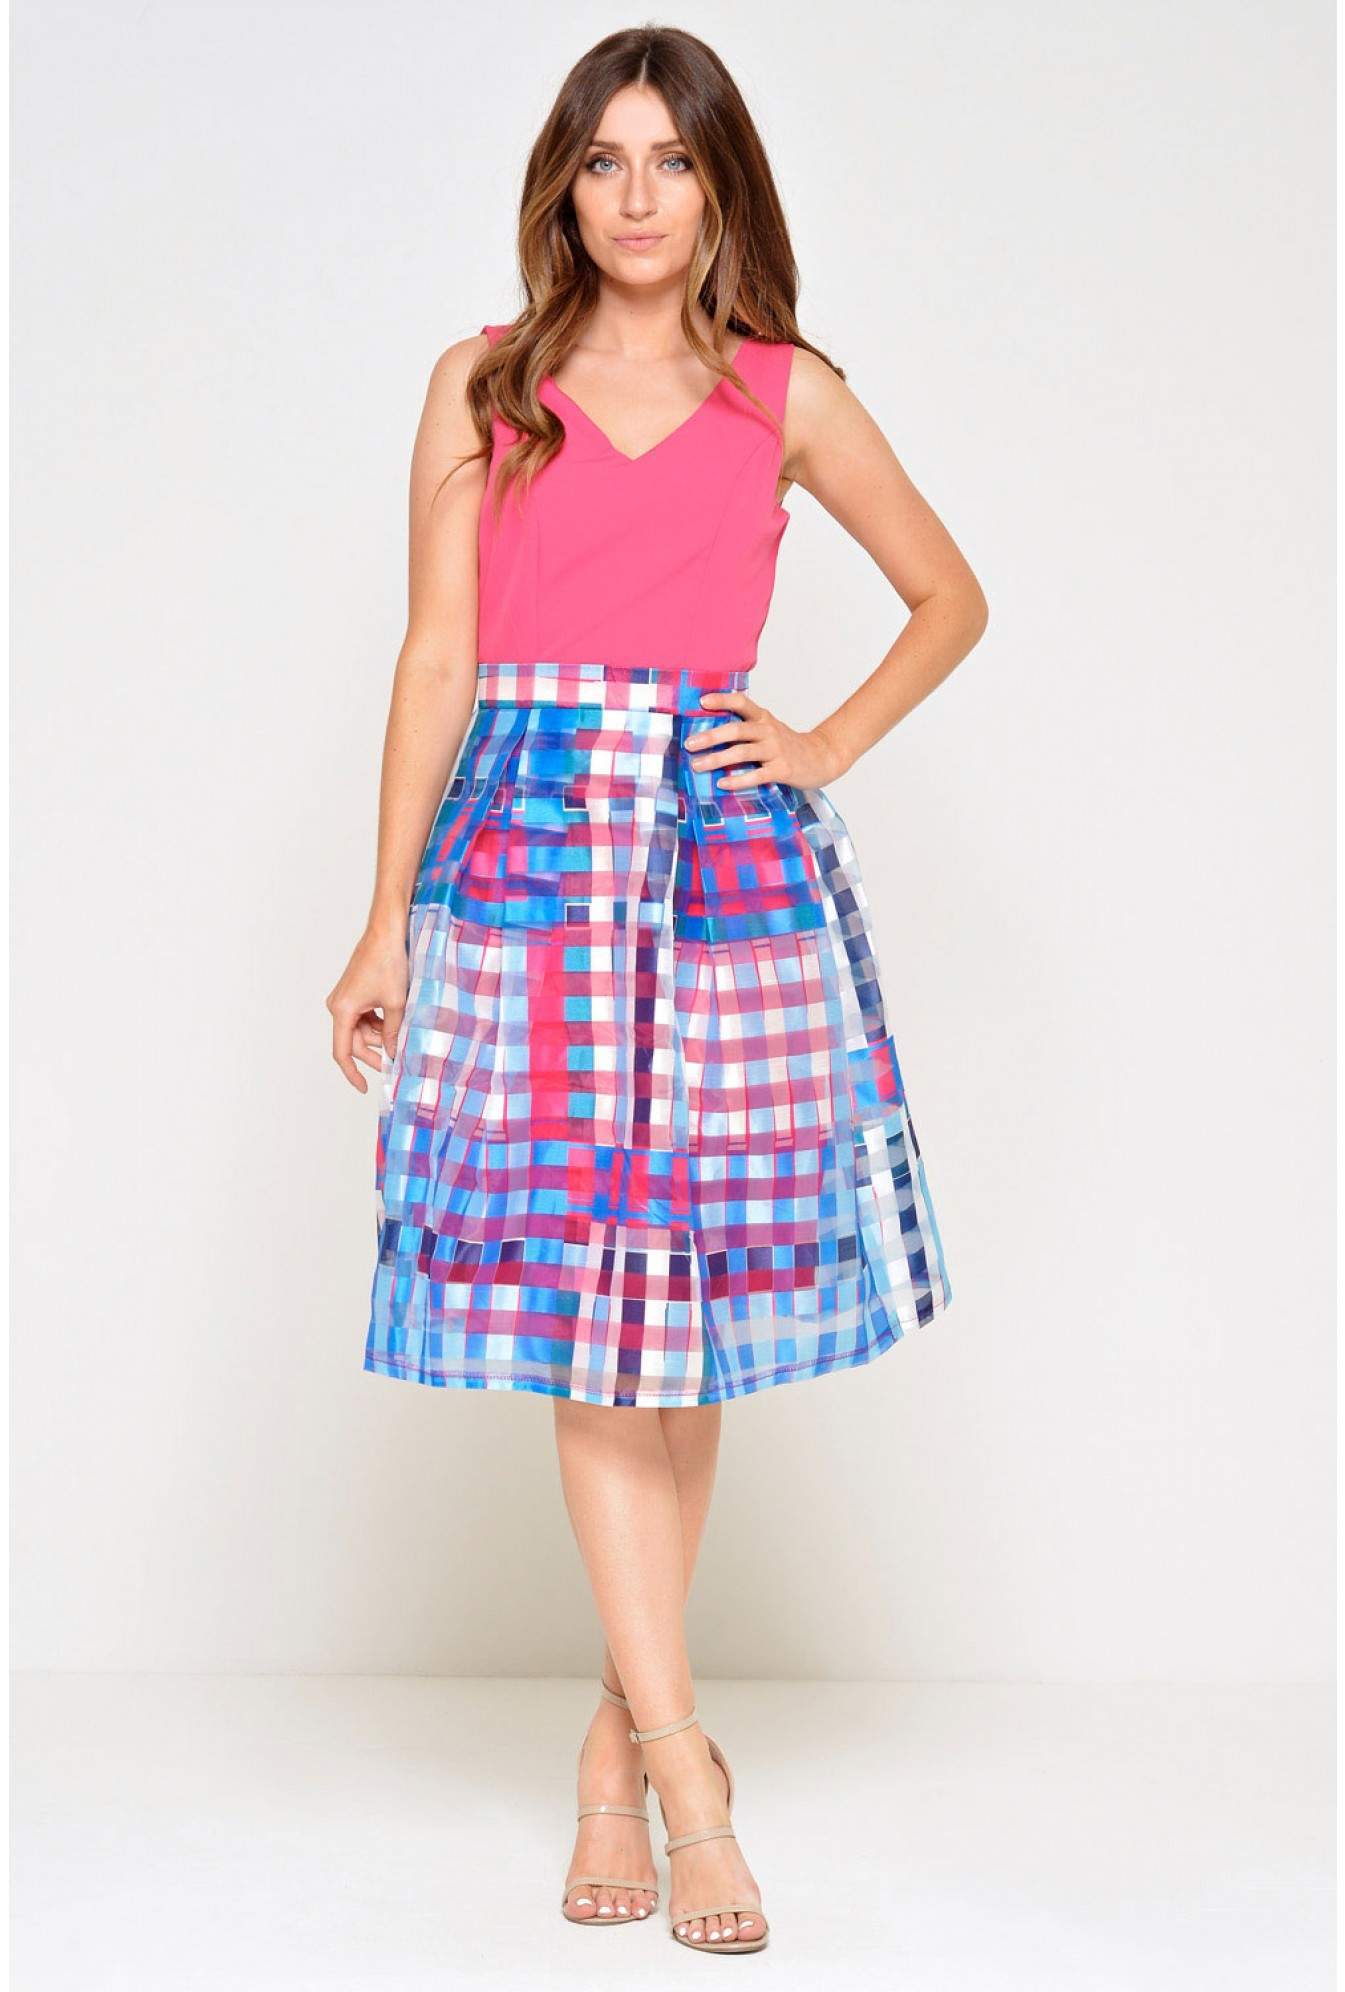 0548c10093 More Views. Sinitta 2 in 1 Skater Dress in Pink and Blue. Marc Angelo